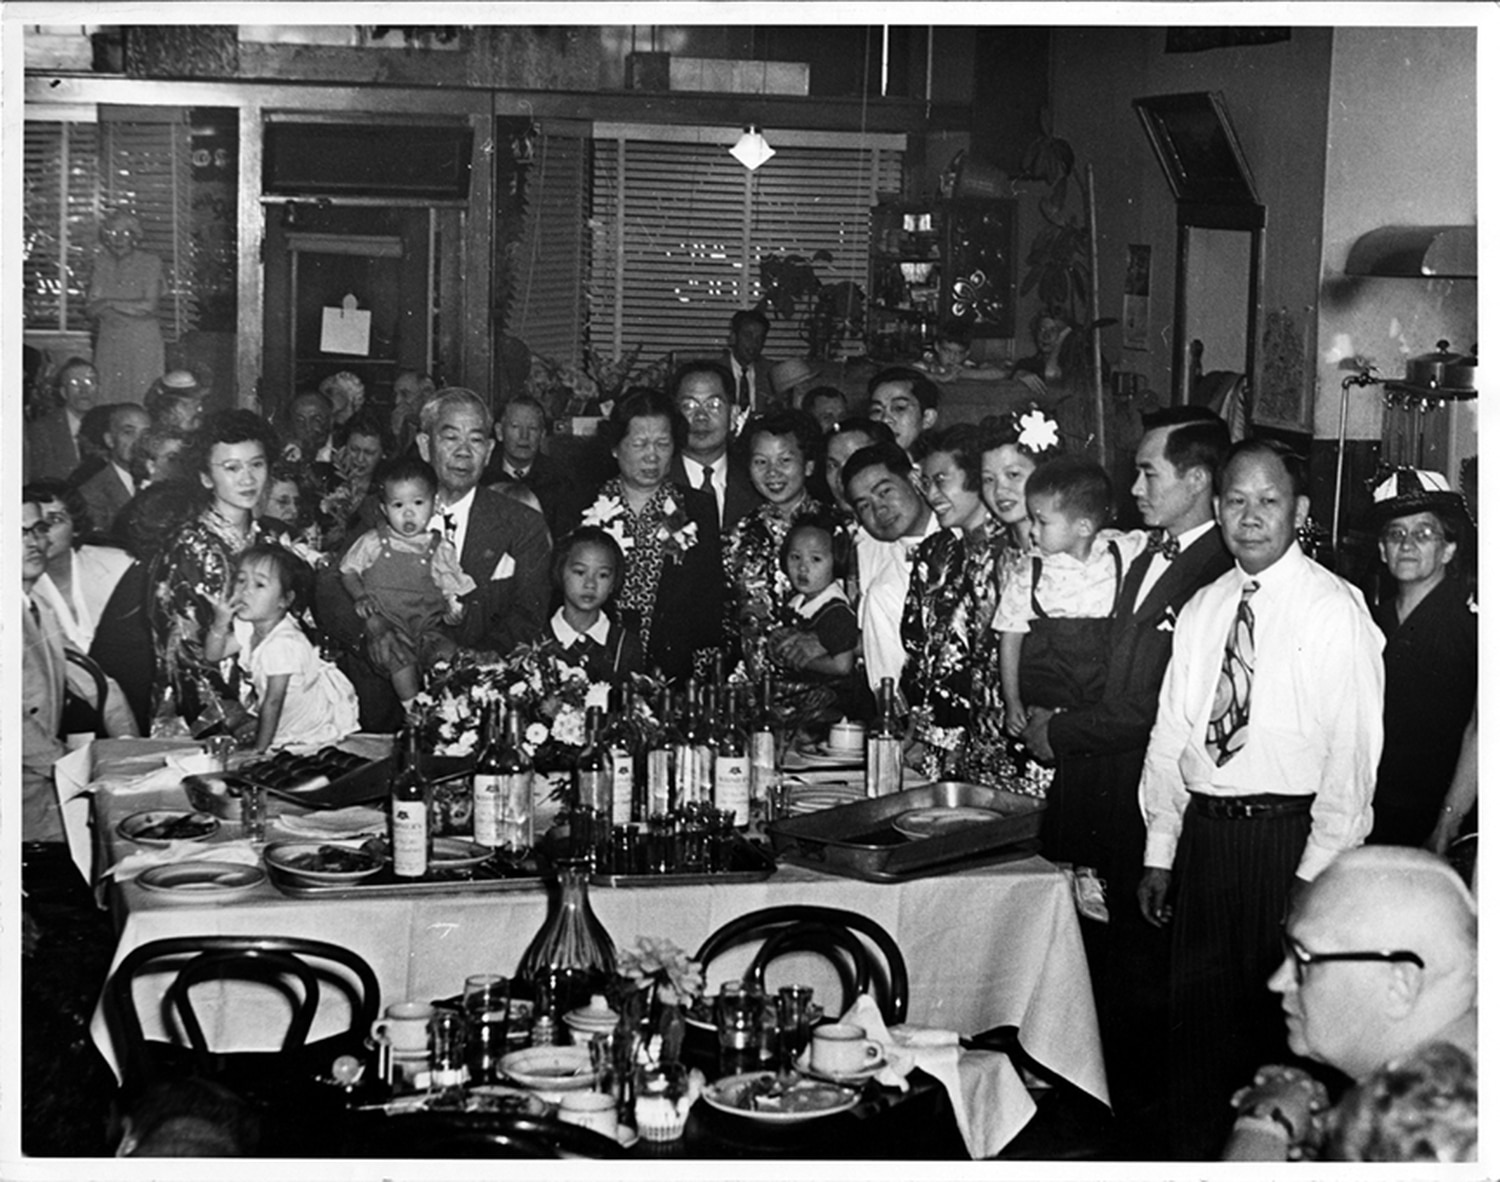 The family frequently held gatherings at the New Canton Cafe. George Park, Henry Gee Gay and Joe Gee are all pictured in this undated photograph.